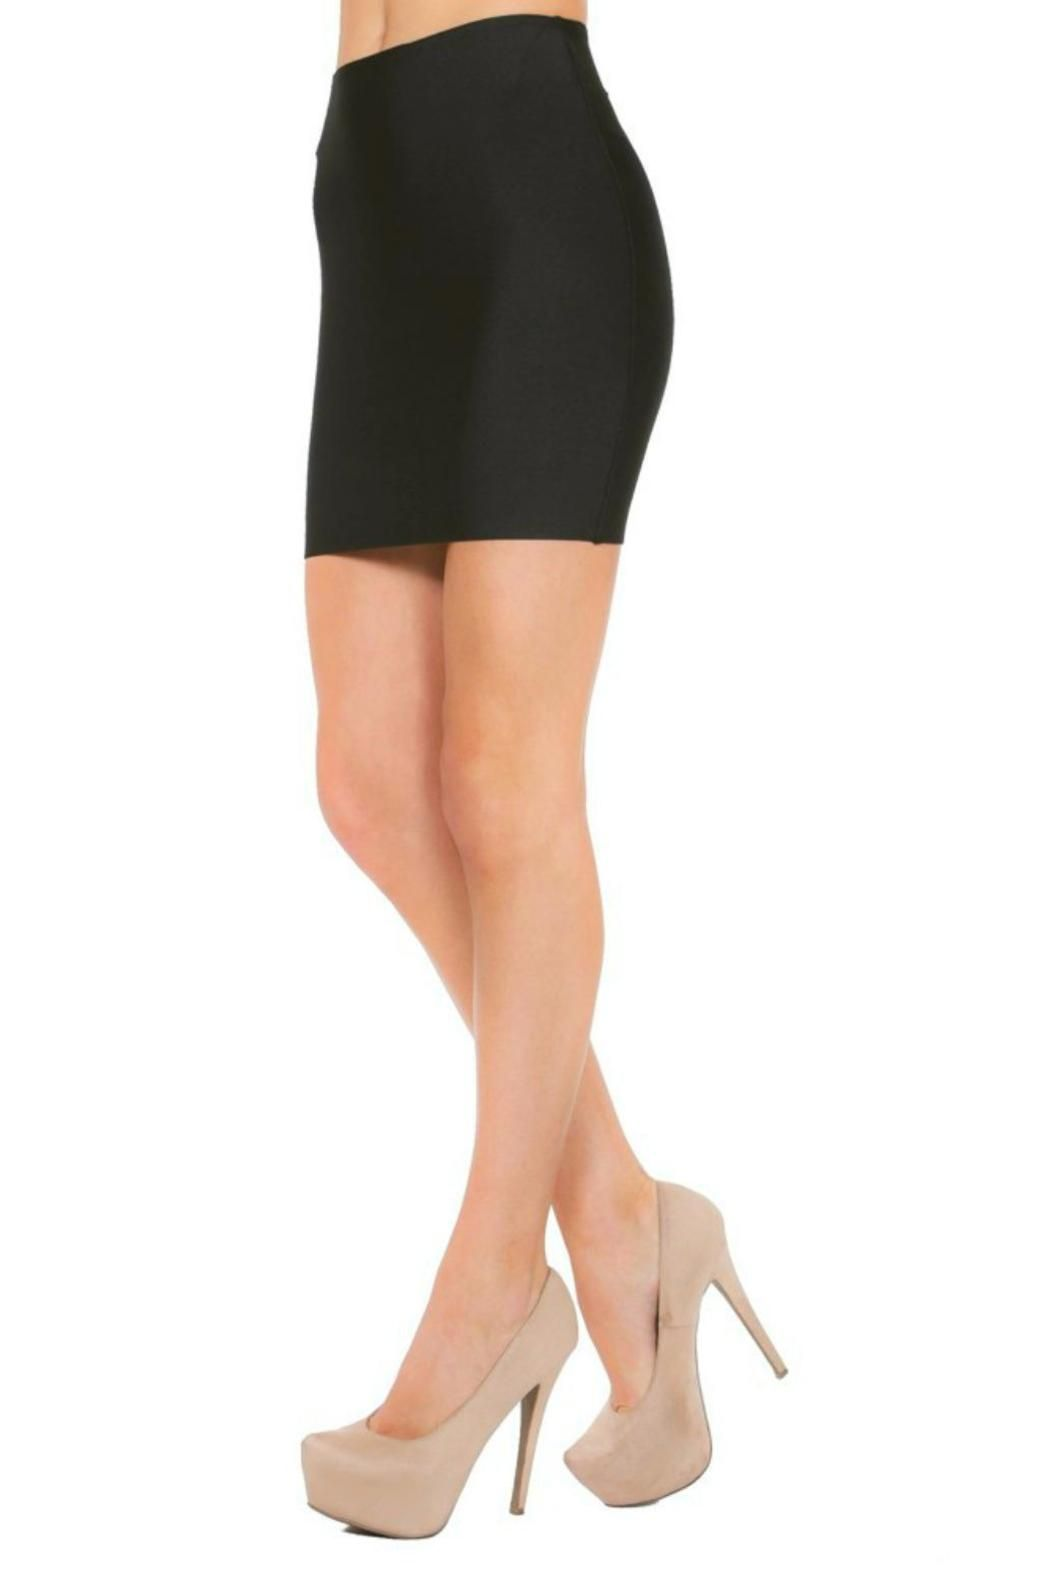 5dfb7f76cef356 Black bandage bodycon mini skirt featuring thick luxe fabric that hugs  every curve. This sexy skirt is a must-have this season! Black Bandage Mini  by ...